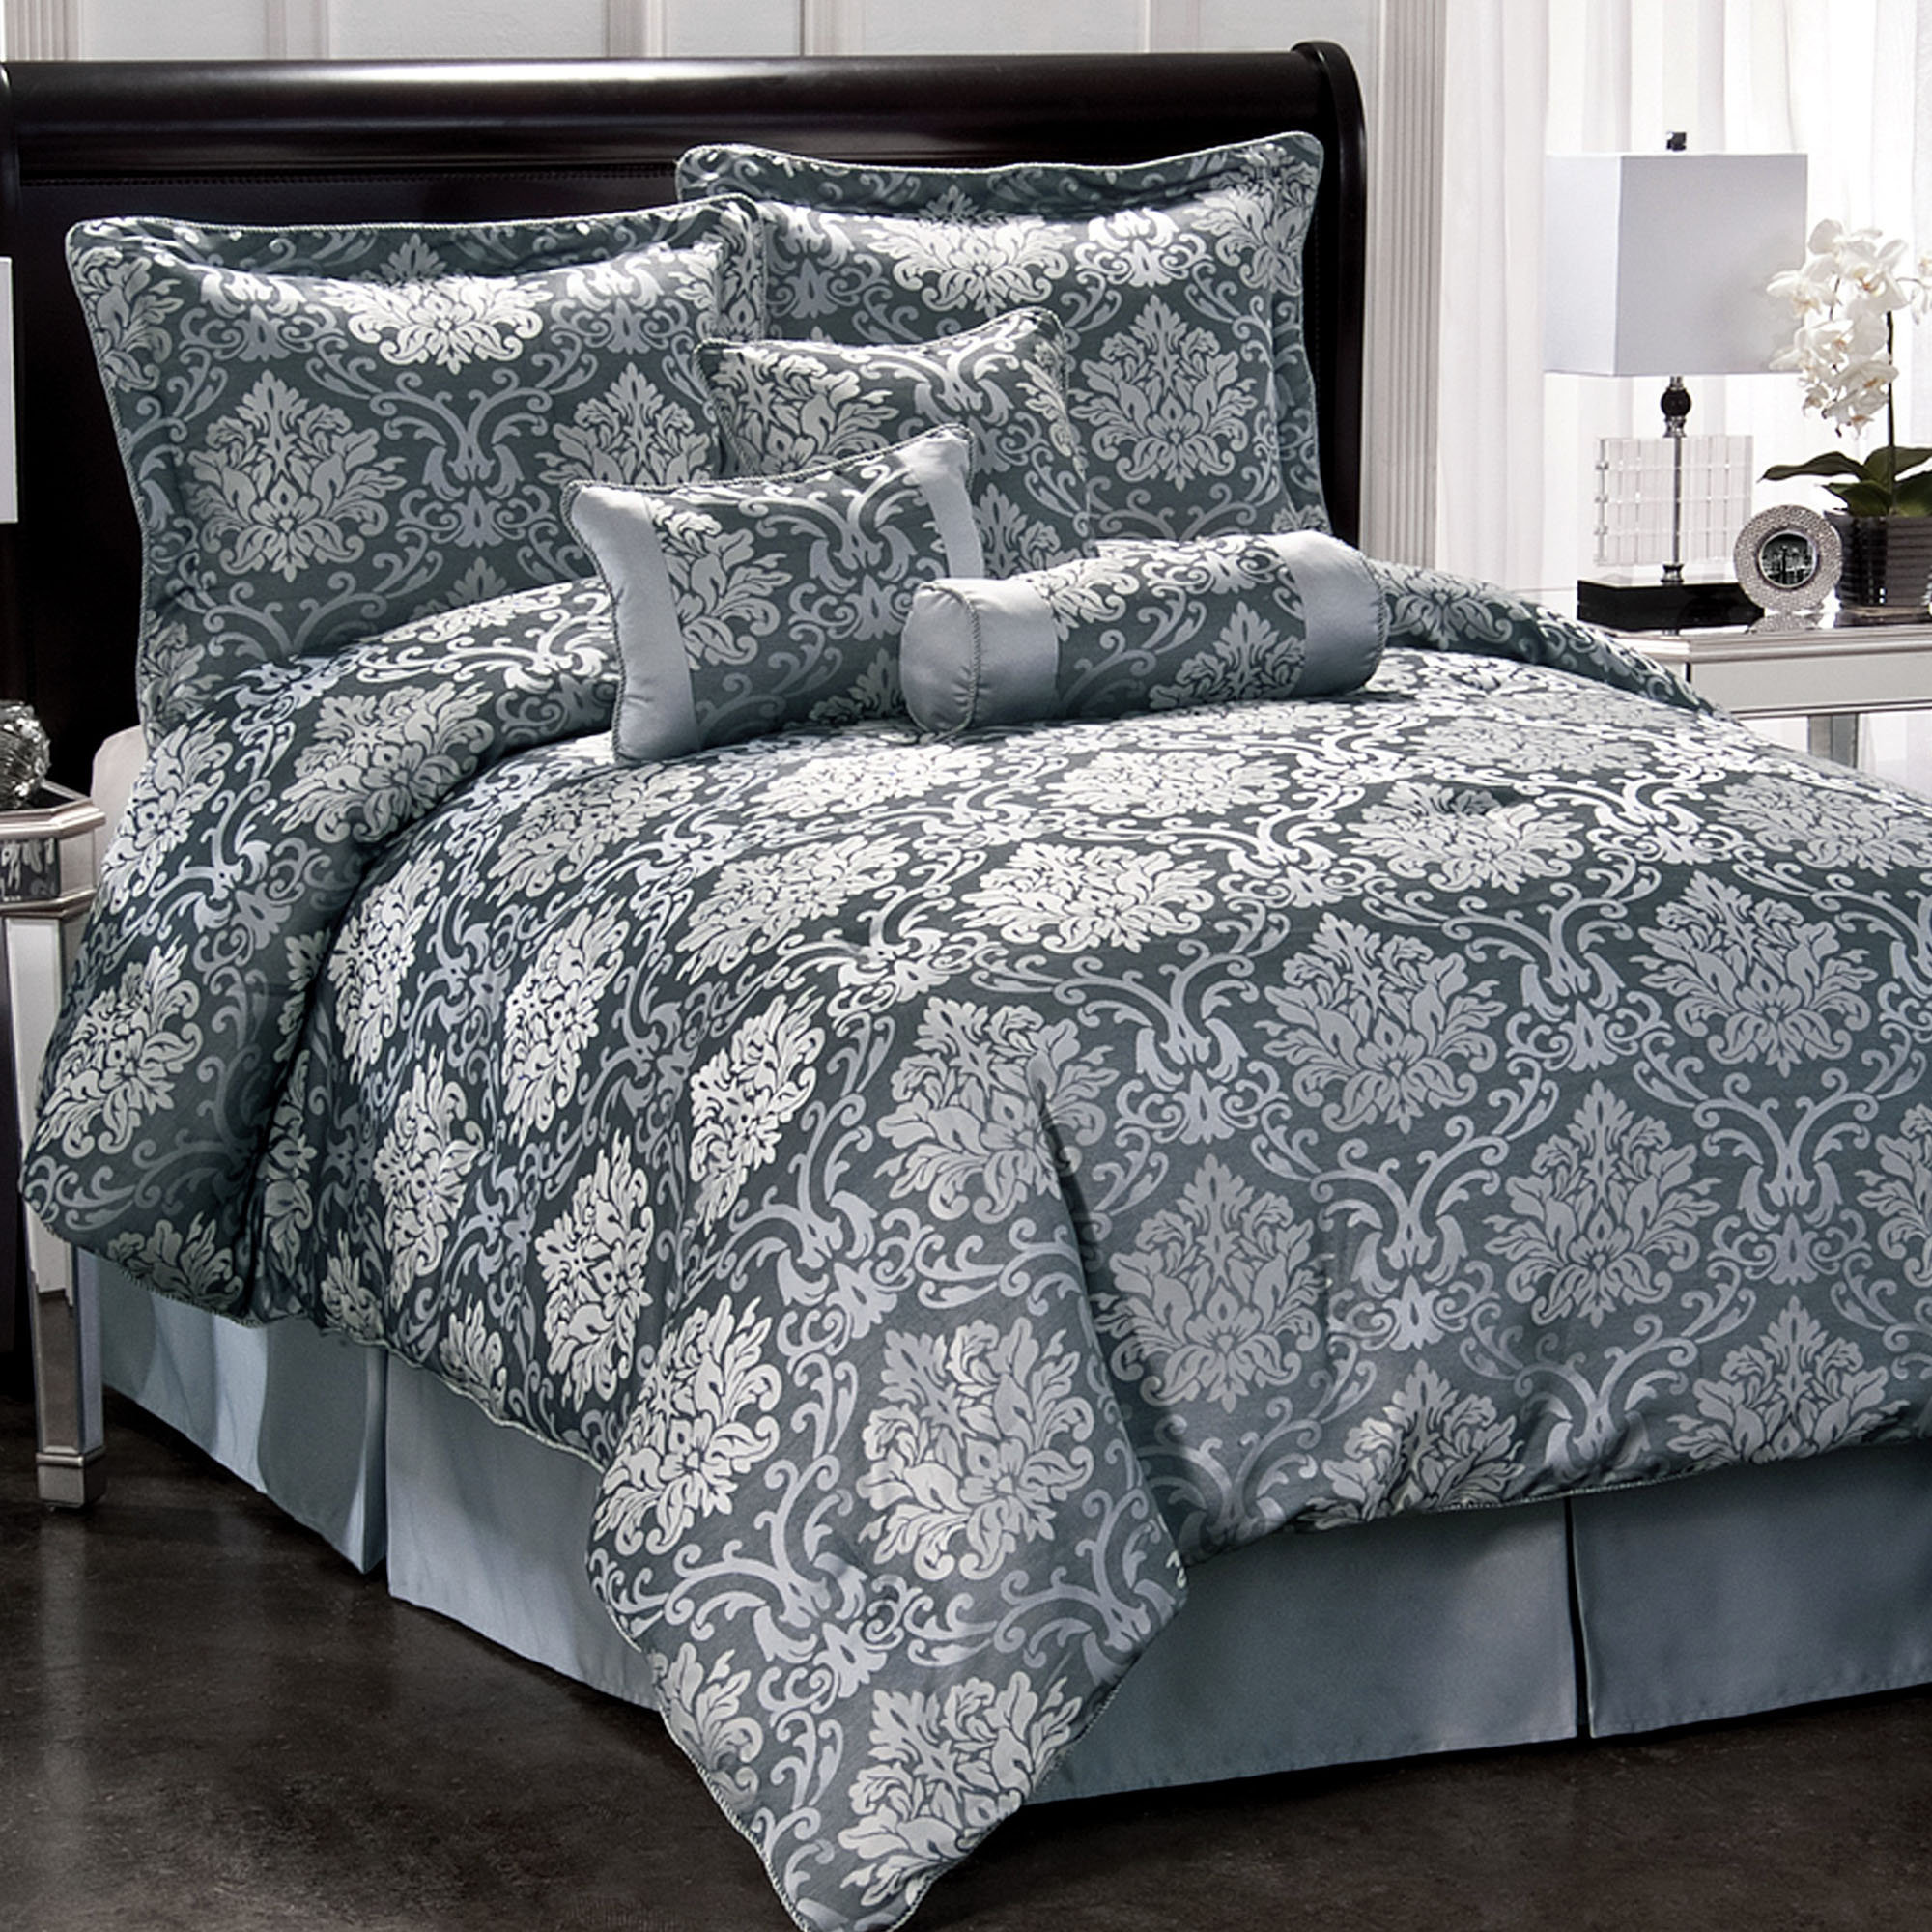 Attractive damask bedding for bed decorating ideas with damask bedding set and damask crib bedding